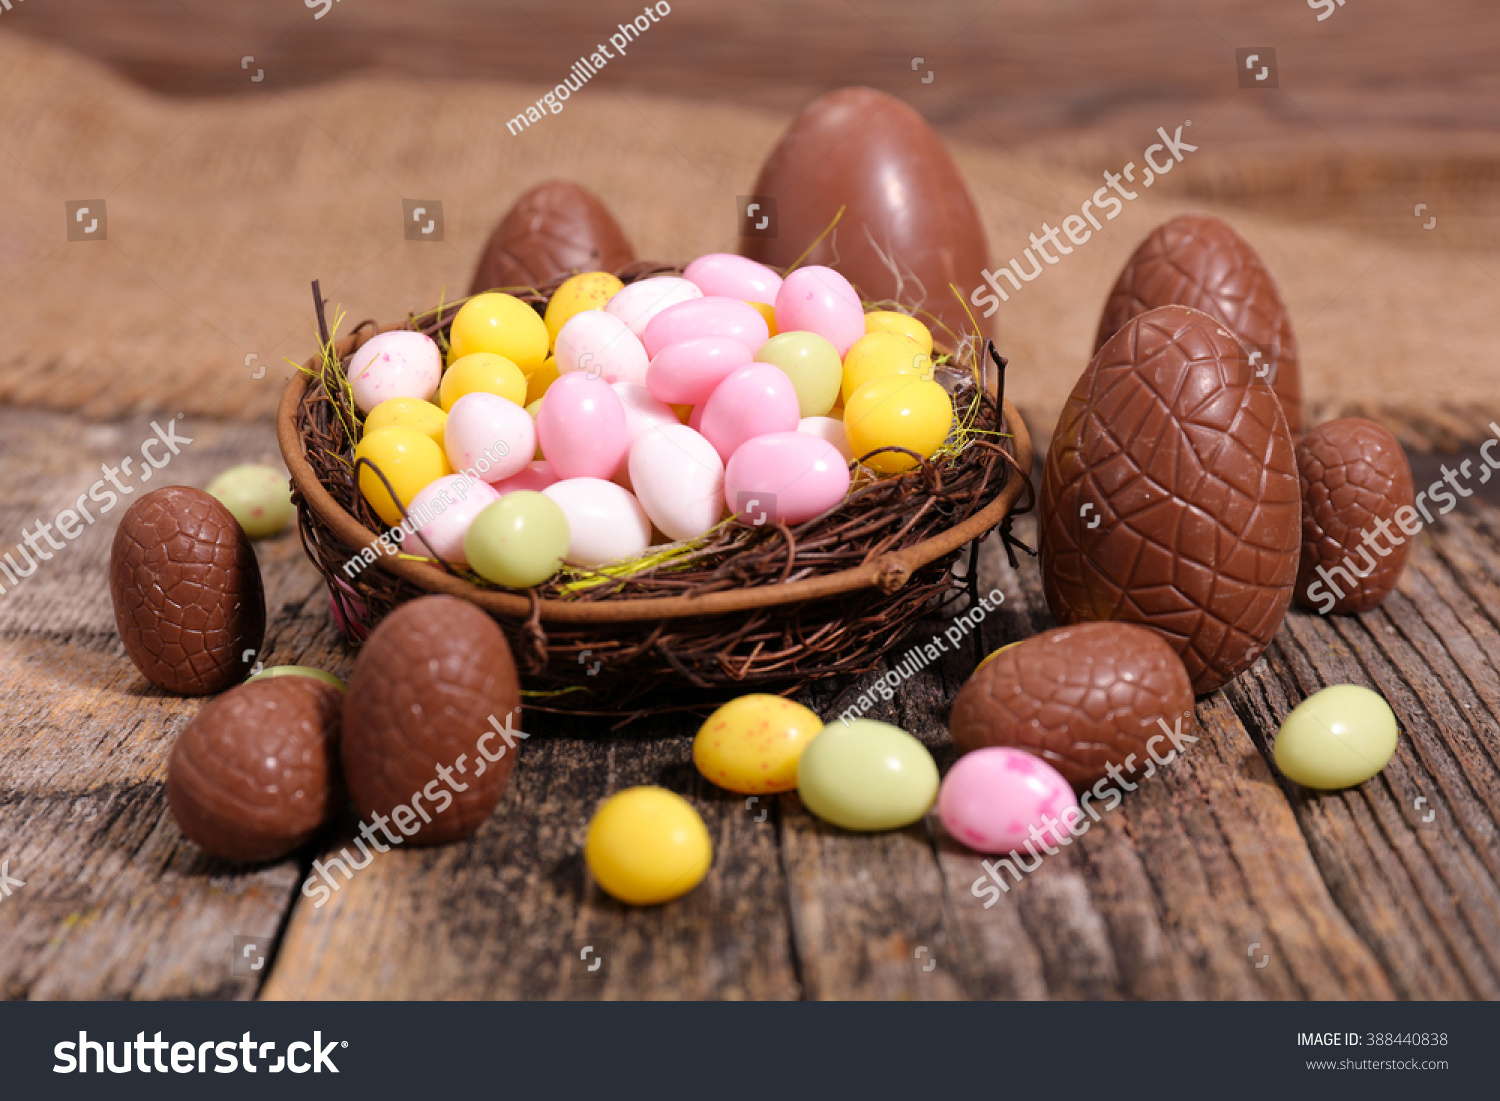 easter chocolate egg stock photo 388440838 shutterstock